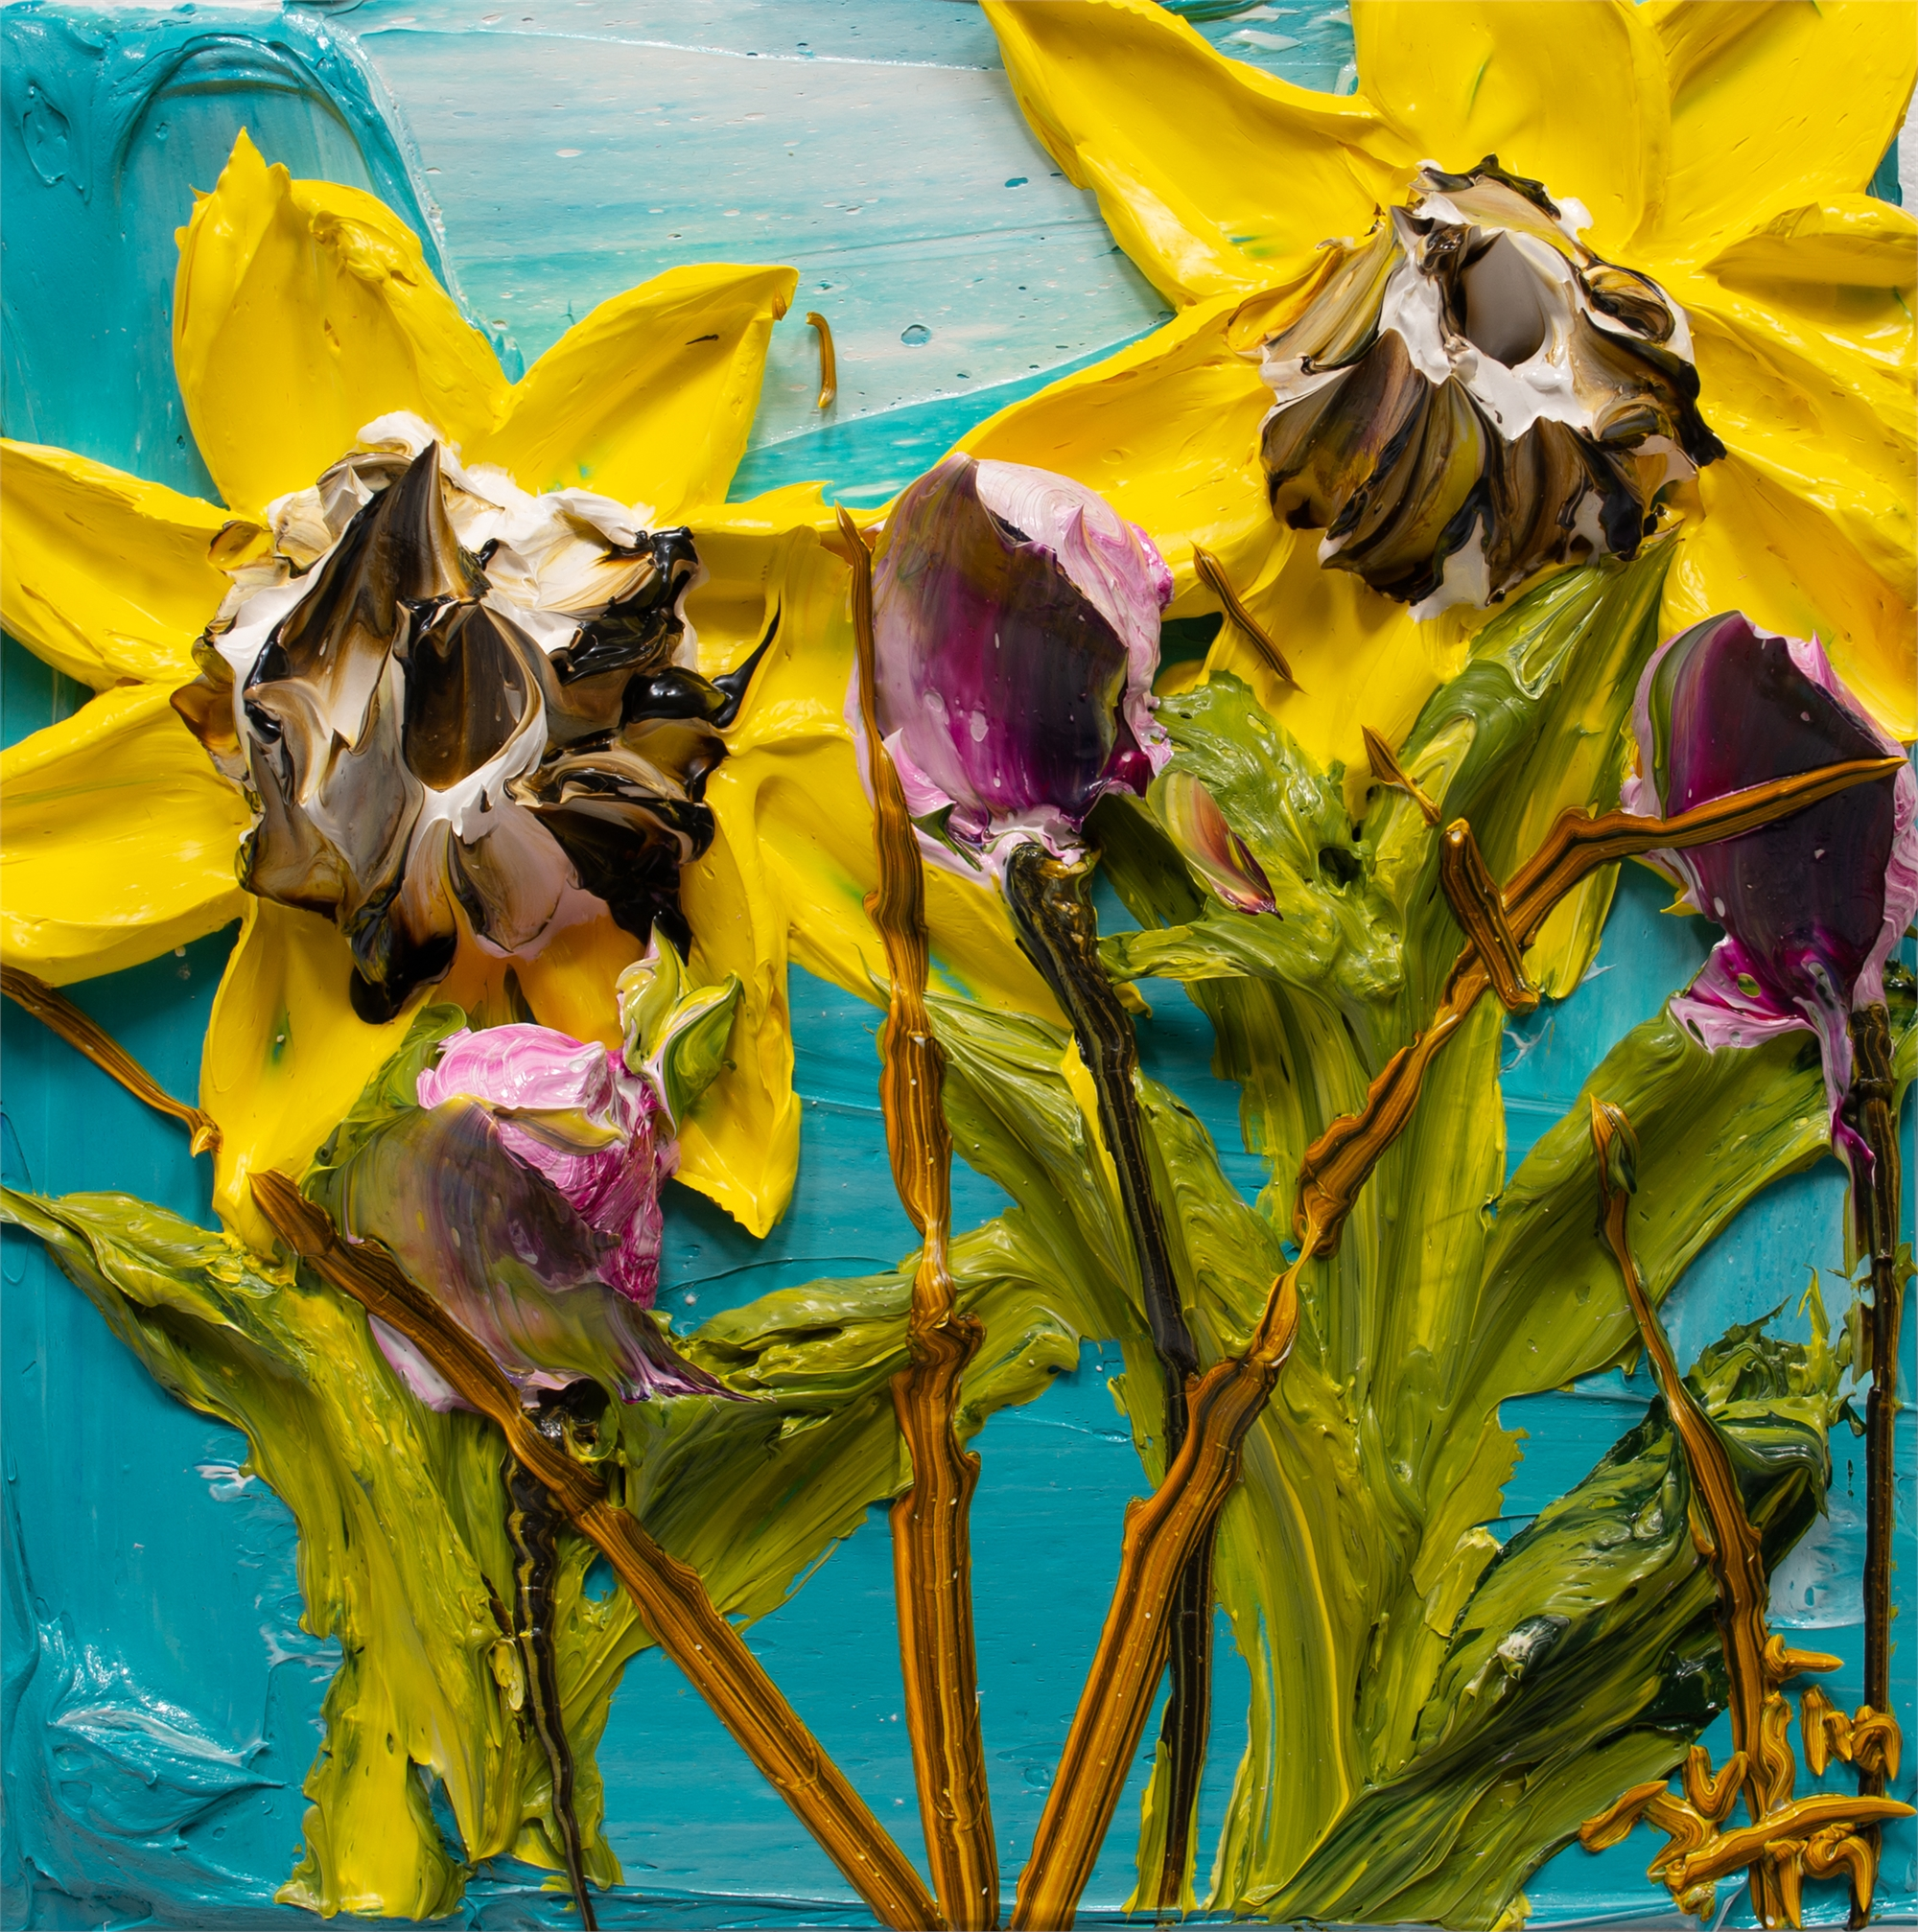 SUNFLOWERS-SF-12X12-2019-185 by JUSTIN GAFFREY